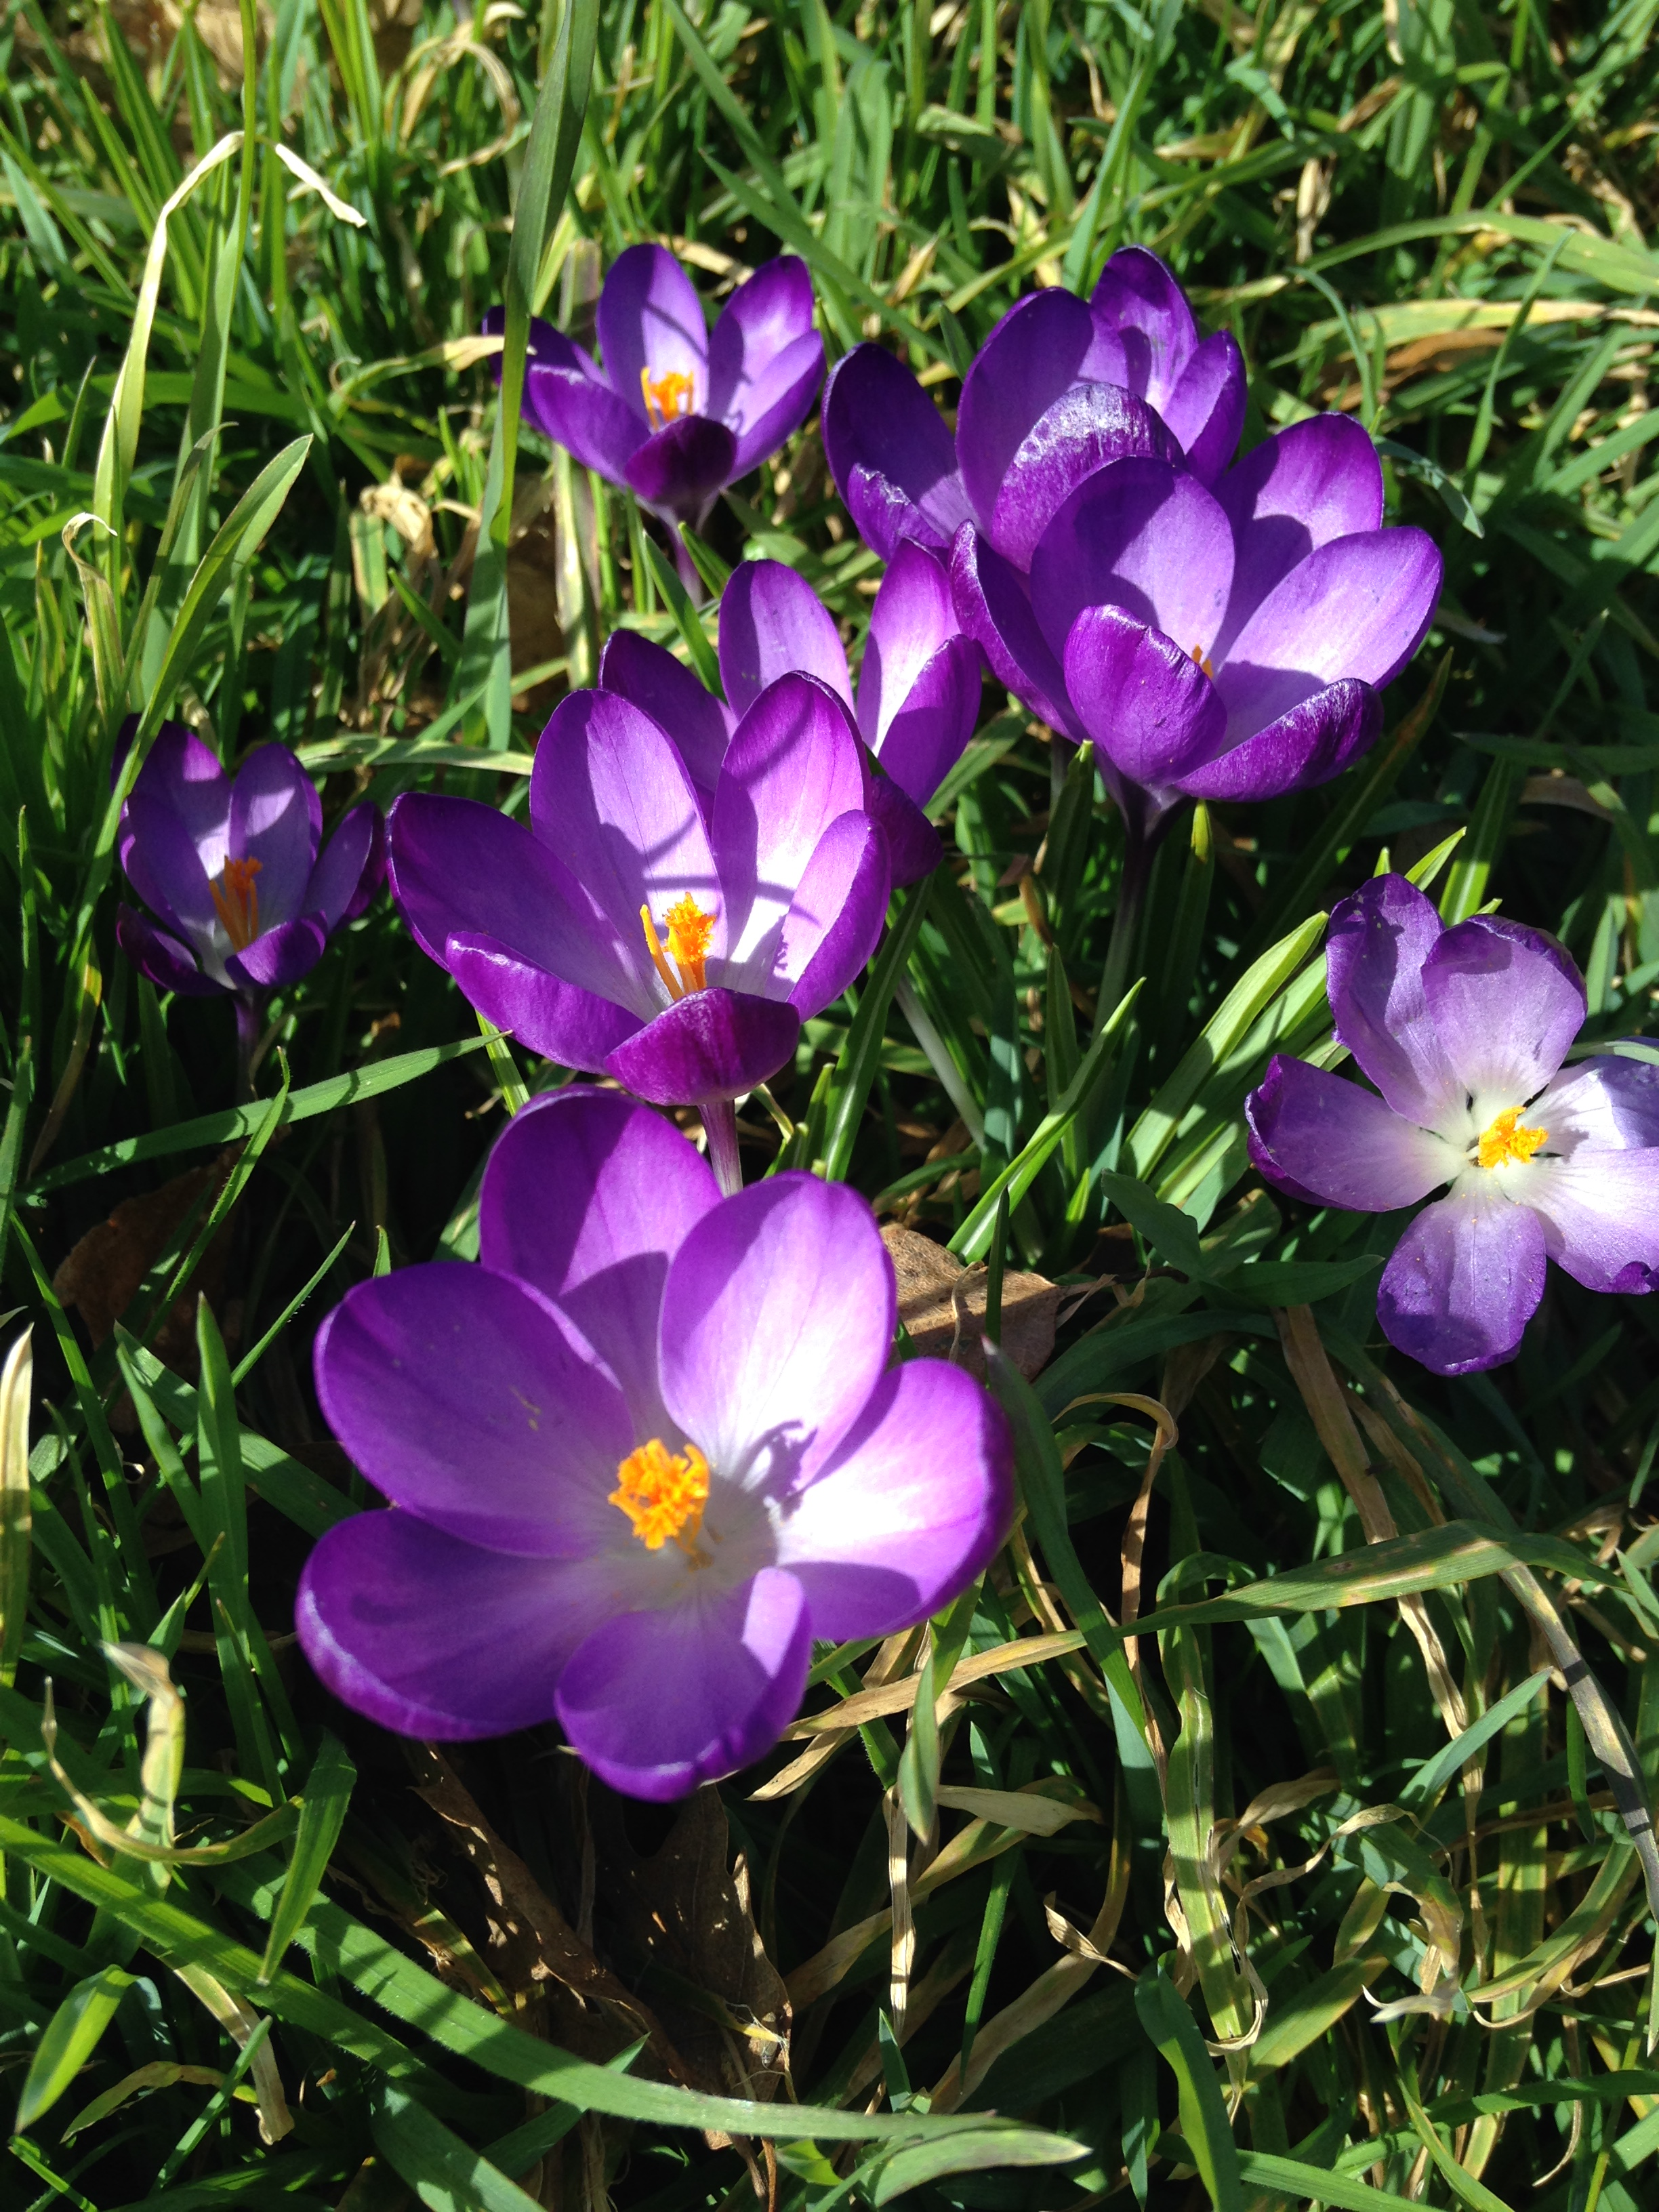 Crocuses on Washington Singer lawn